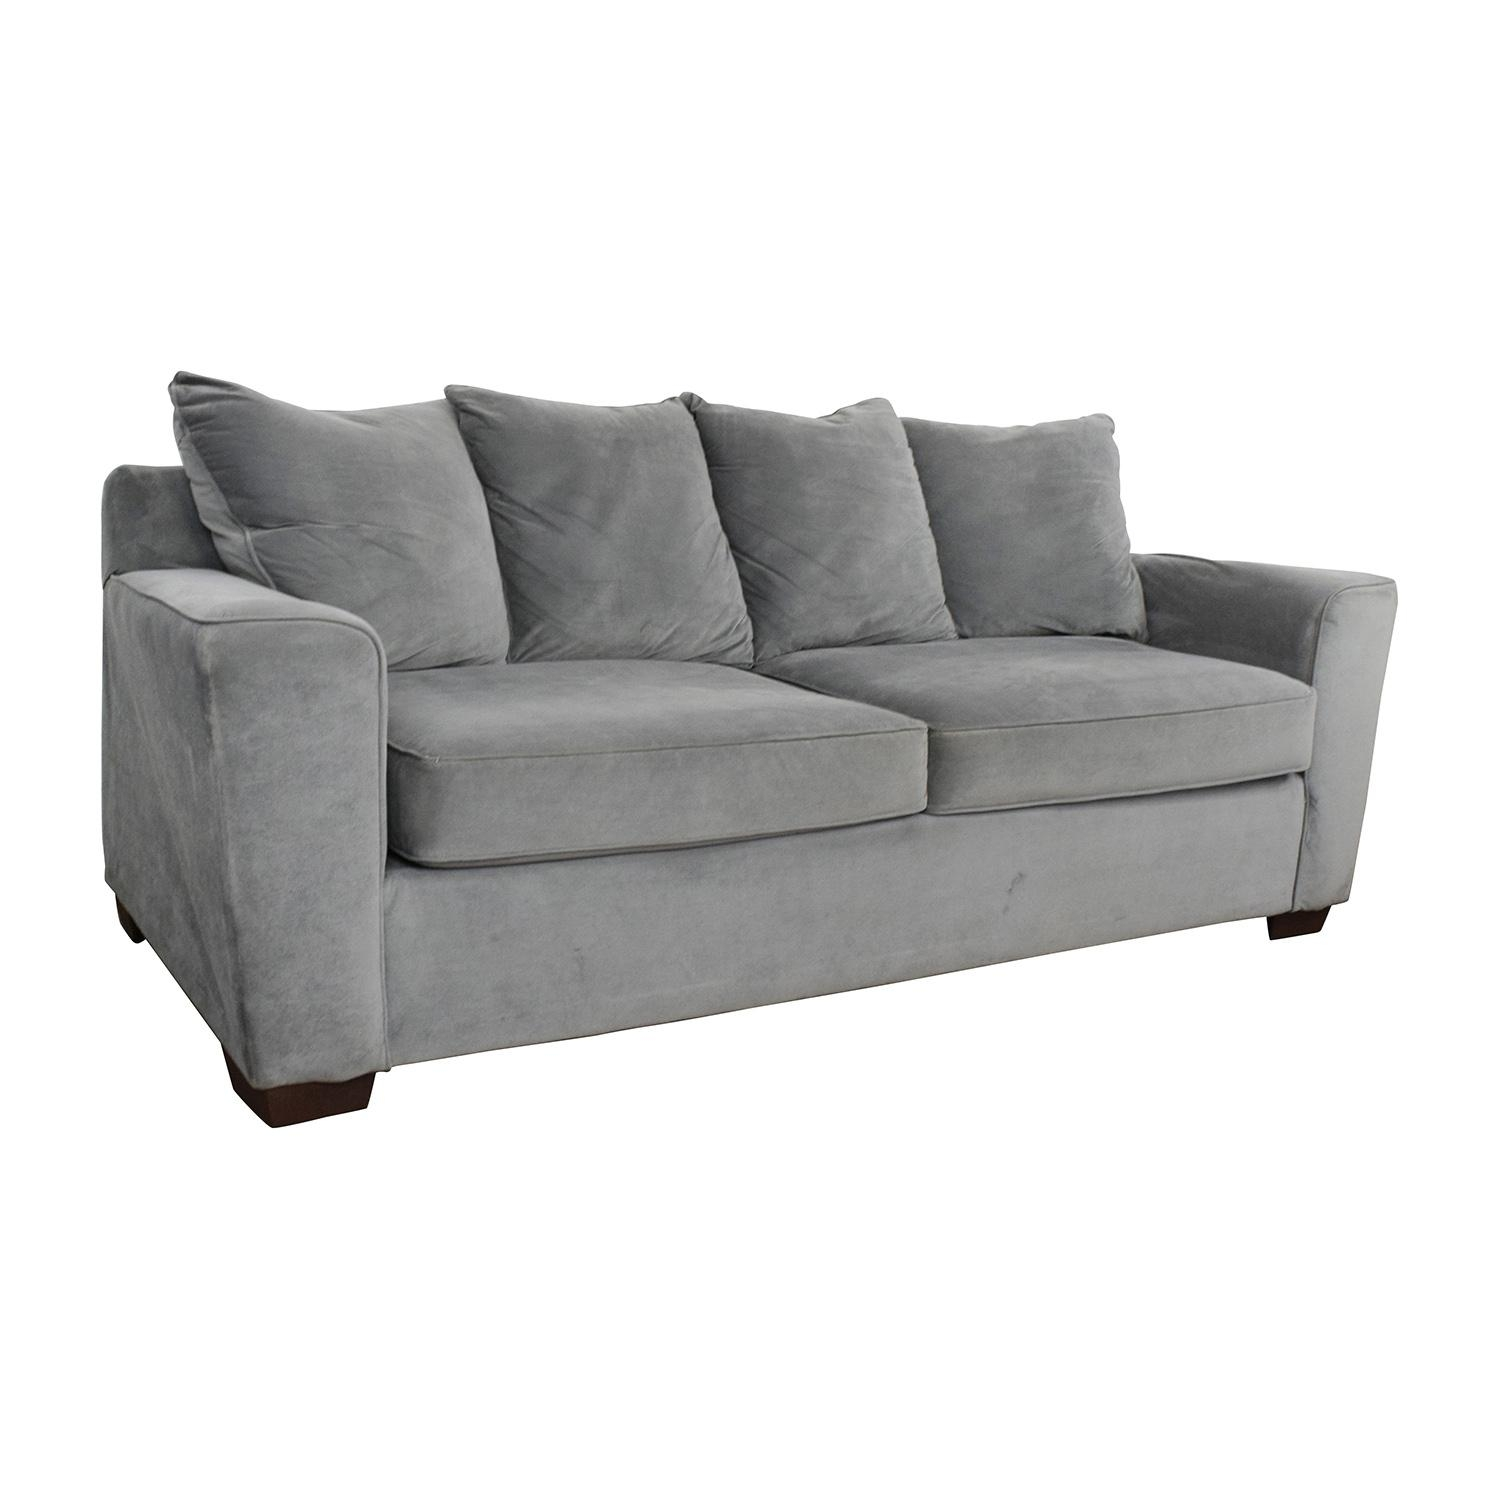 57% Off – Jennifer Convertibles Jennifer Convertibles Grey Couch Intended For Jennifer Sofas (Photo 12 of 20)